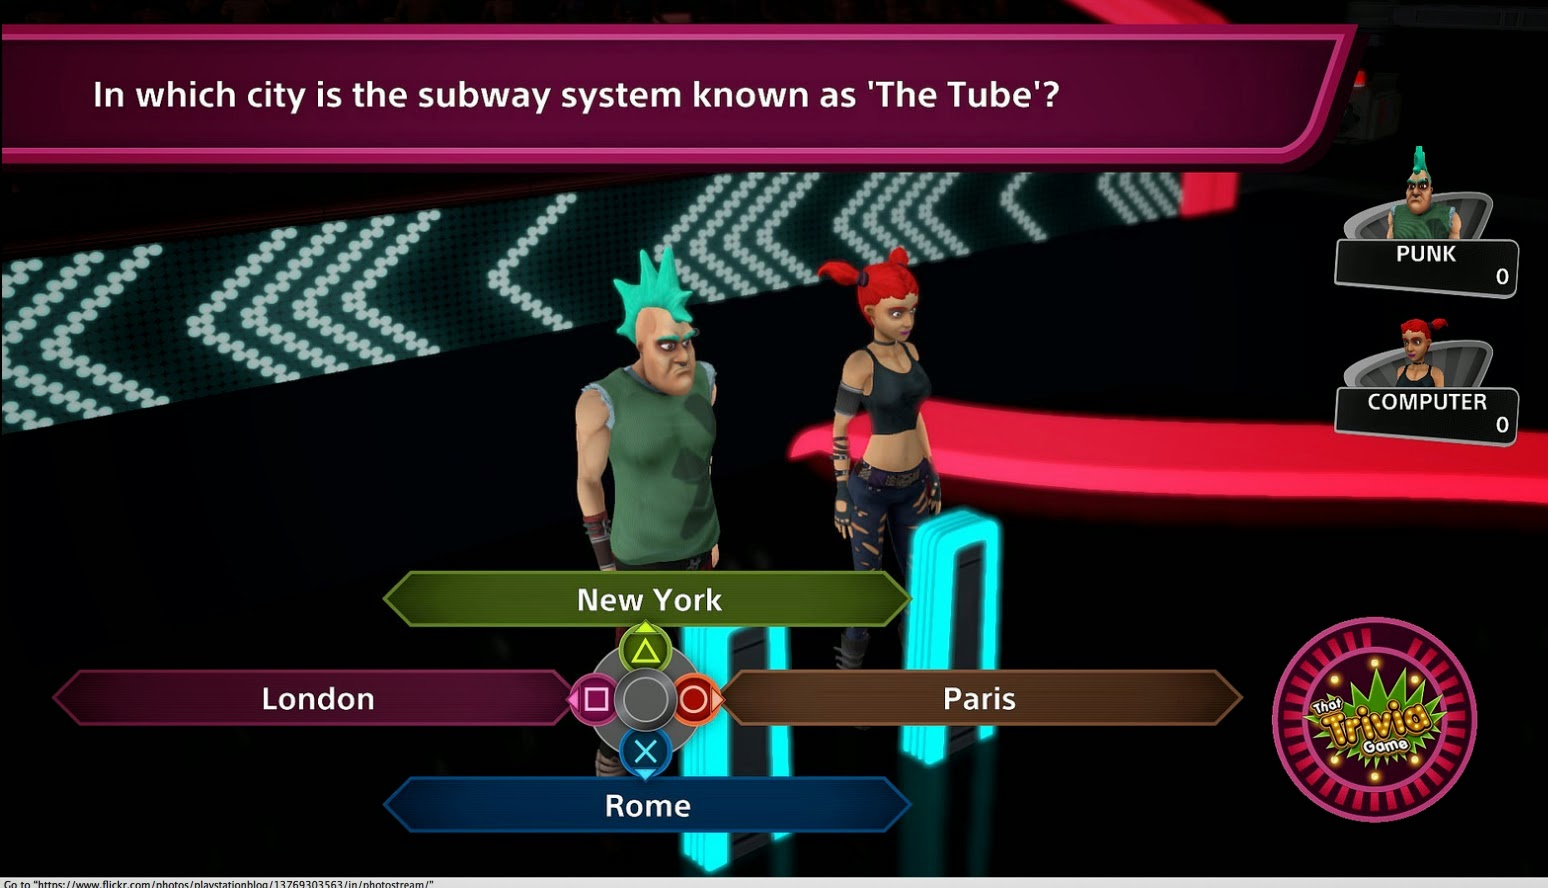 That-Trivia-Game-On-Playstation-4-Out-Today-April-15-2014